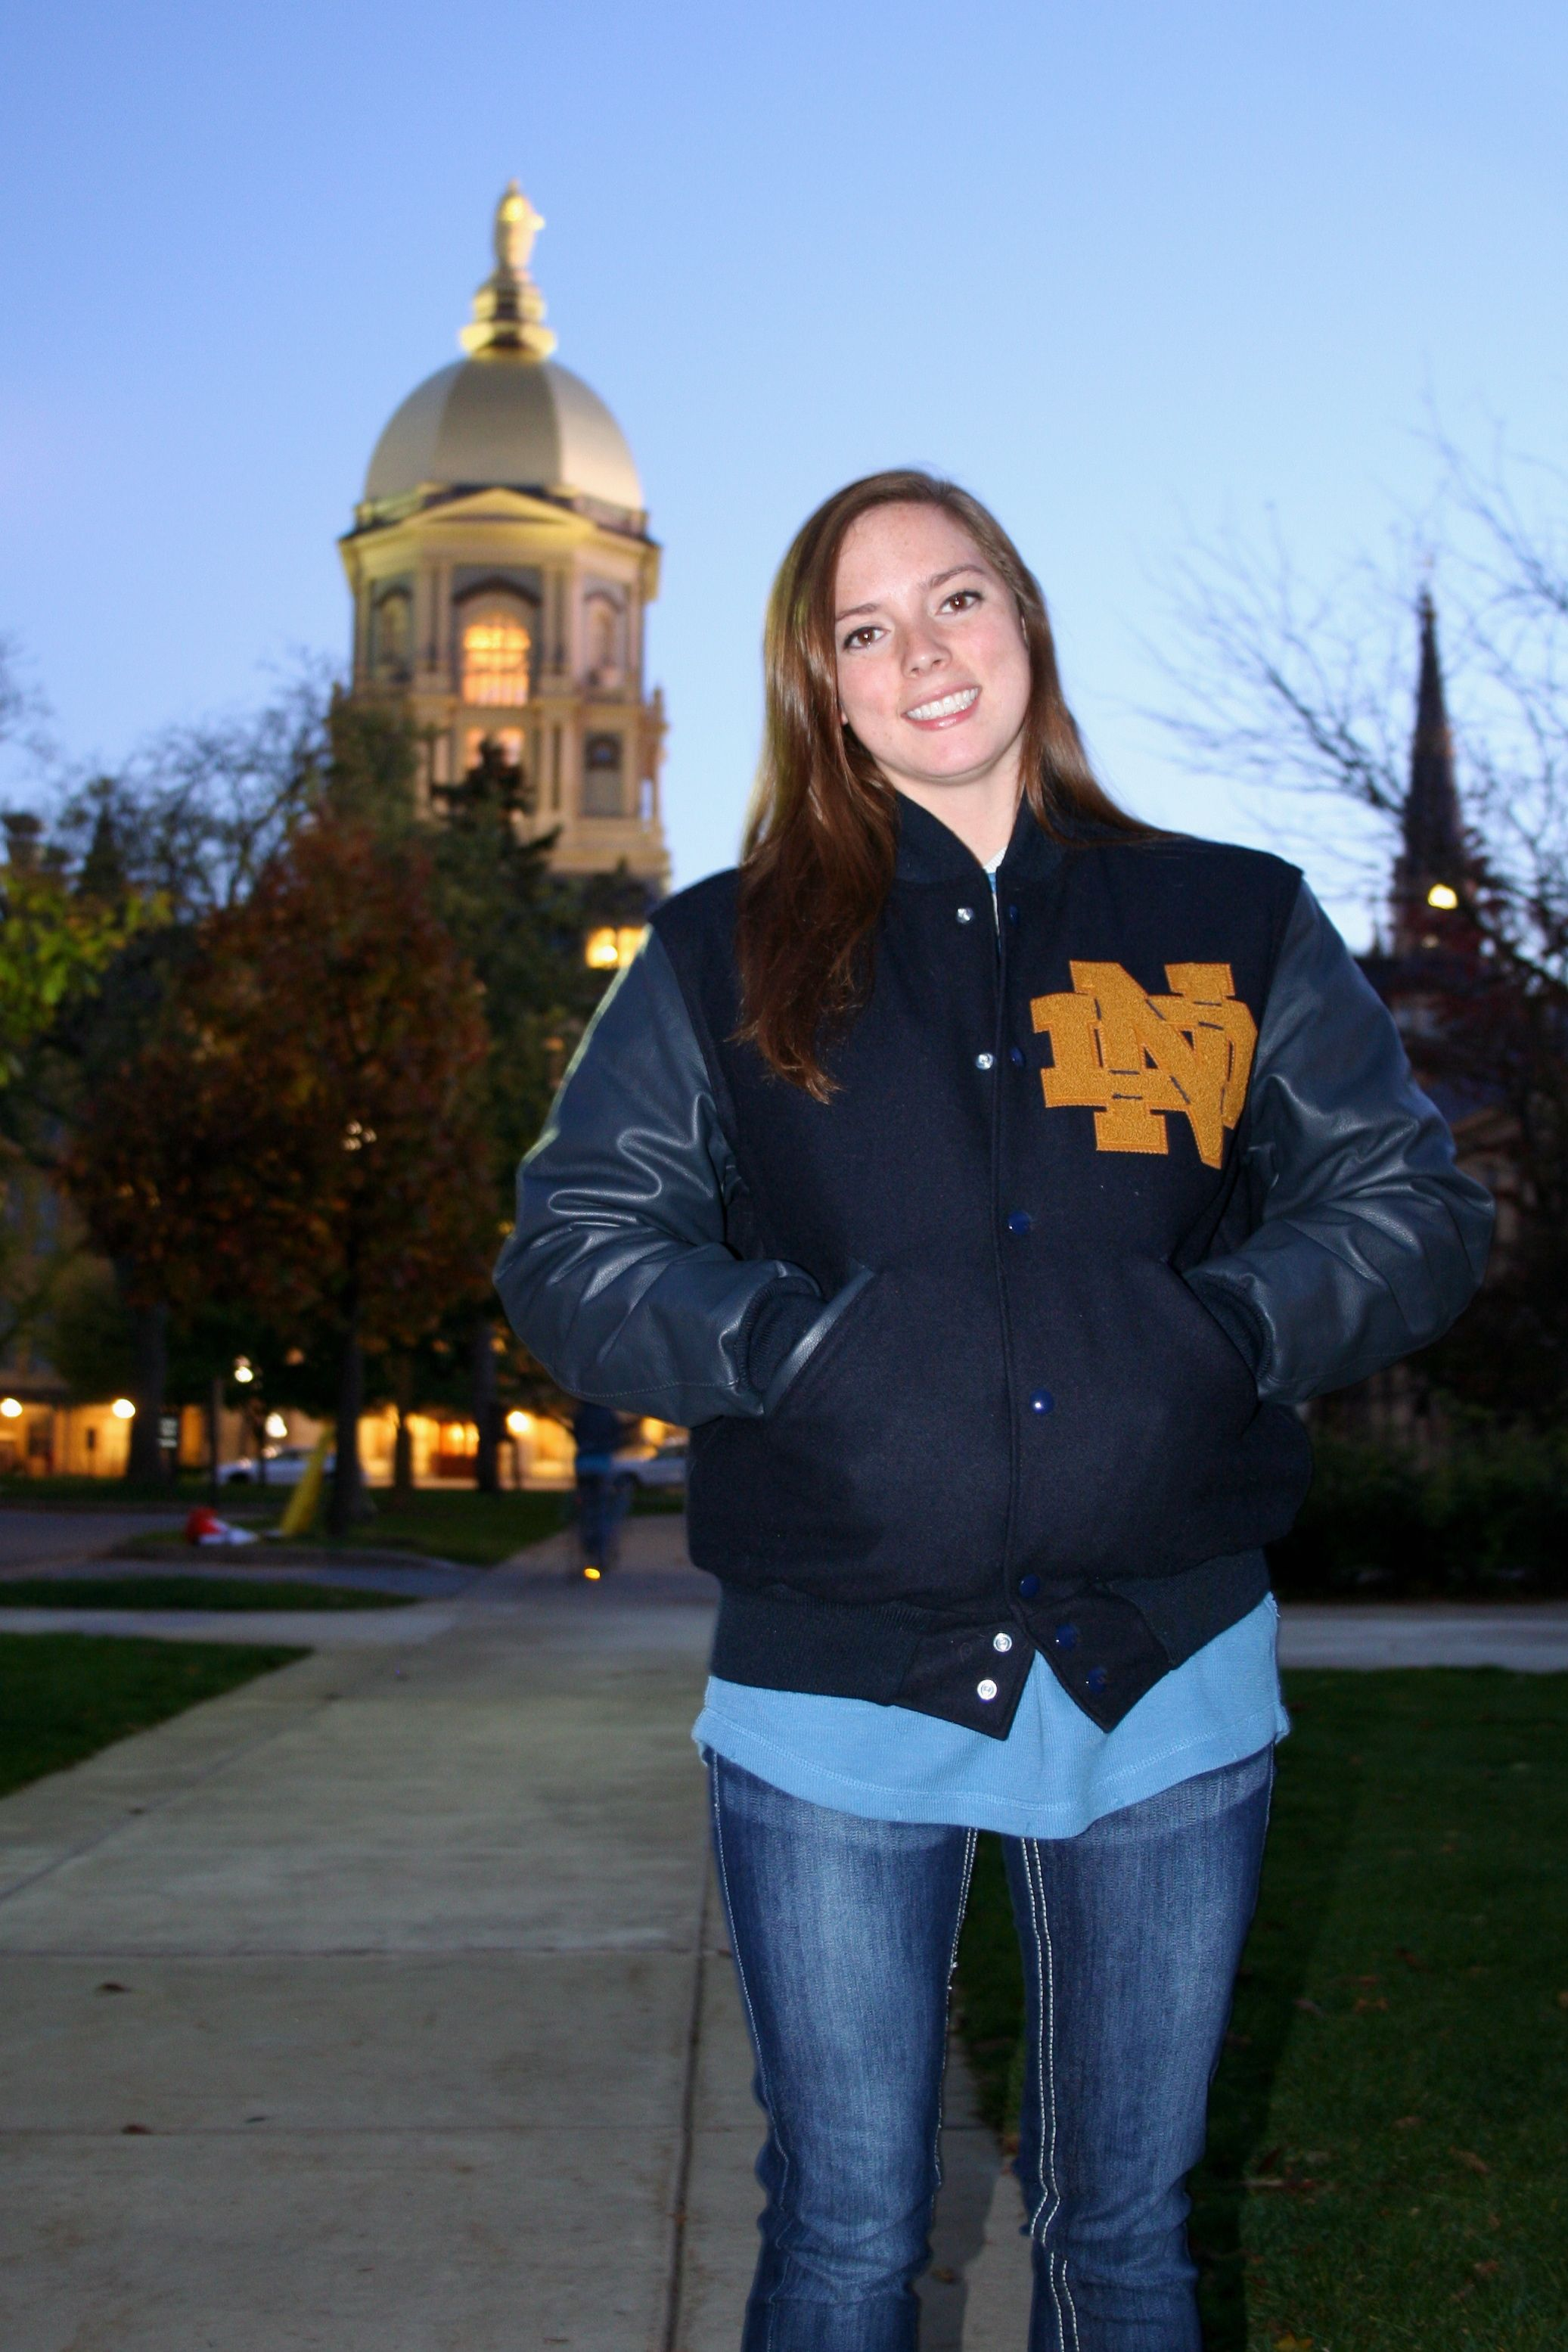 Notre dame women 39 s swimming diving my teams pinterest diving women 39 s diving and - Dive e dame frattamaggiore ...